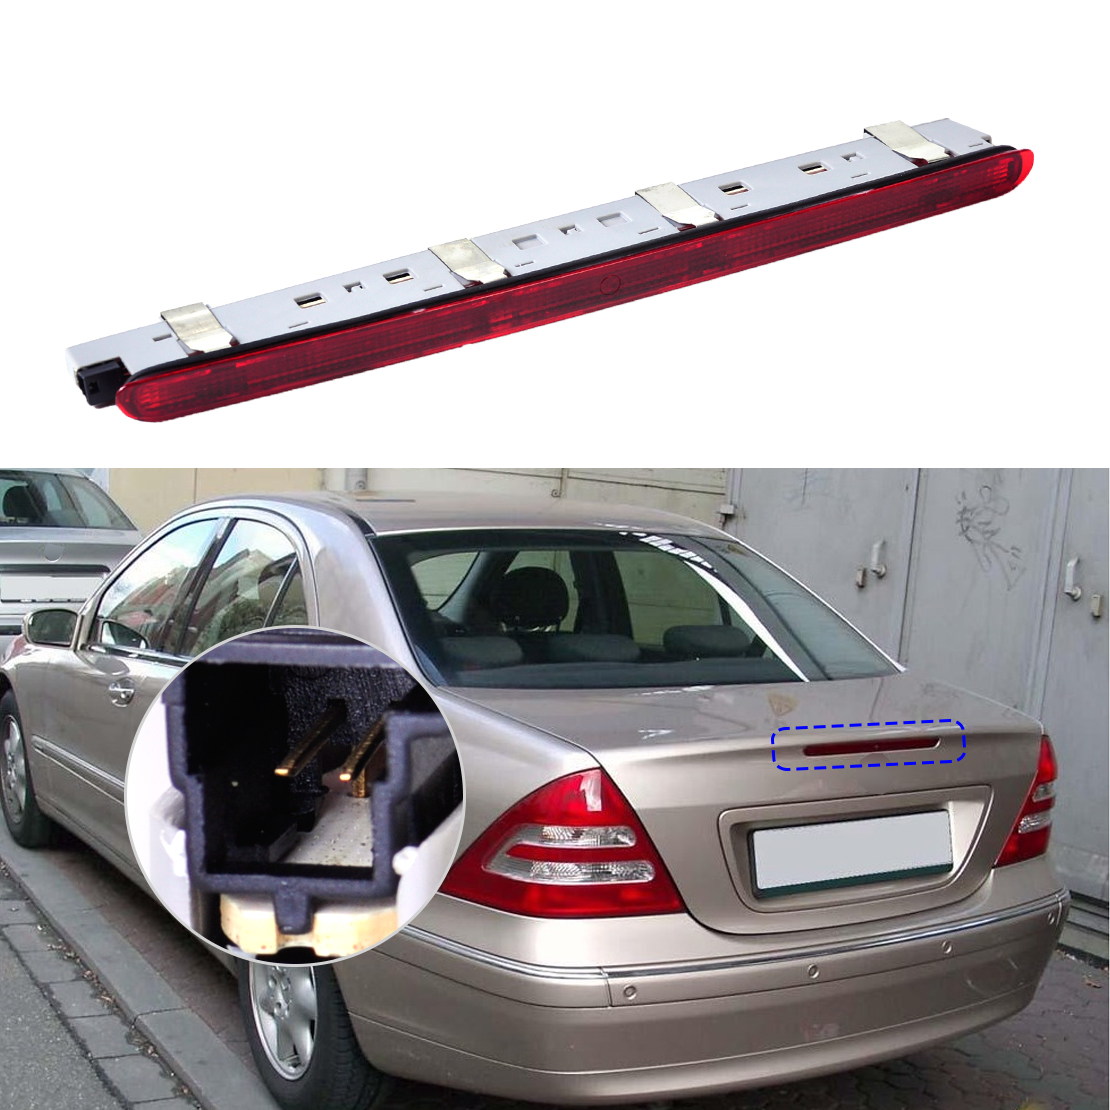 citall 2038201456 2038200156 rear tail stop lamp third brake light fit for mercedes w203 c230 c240 [ 1110 x 1110 Pixel ]